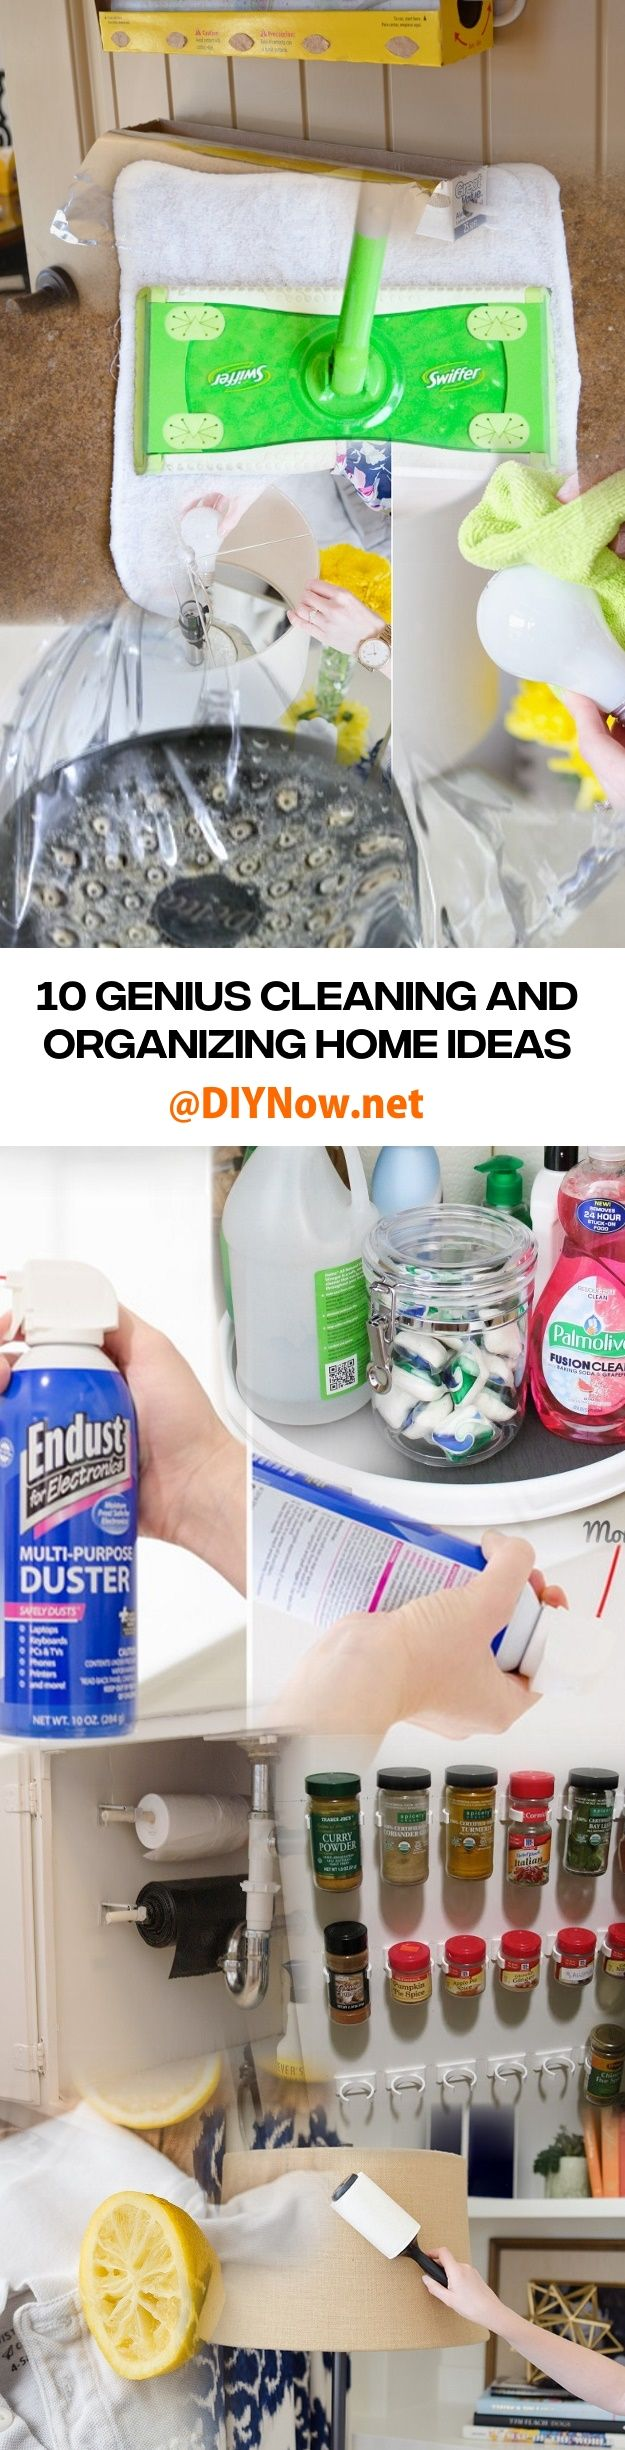 10 Genius Cleaning and Organizing Home Hacks Ideas